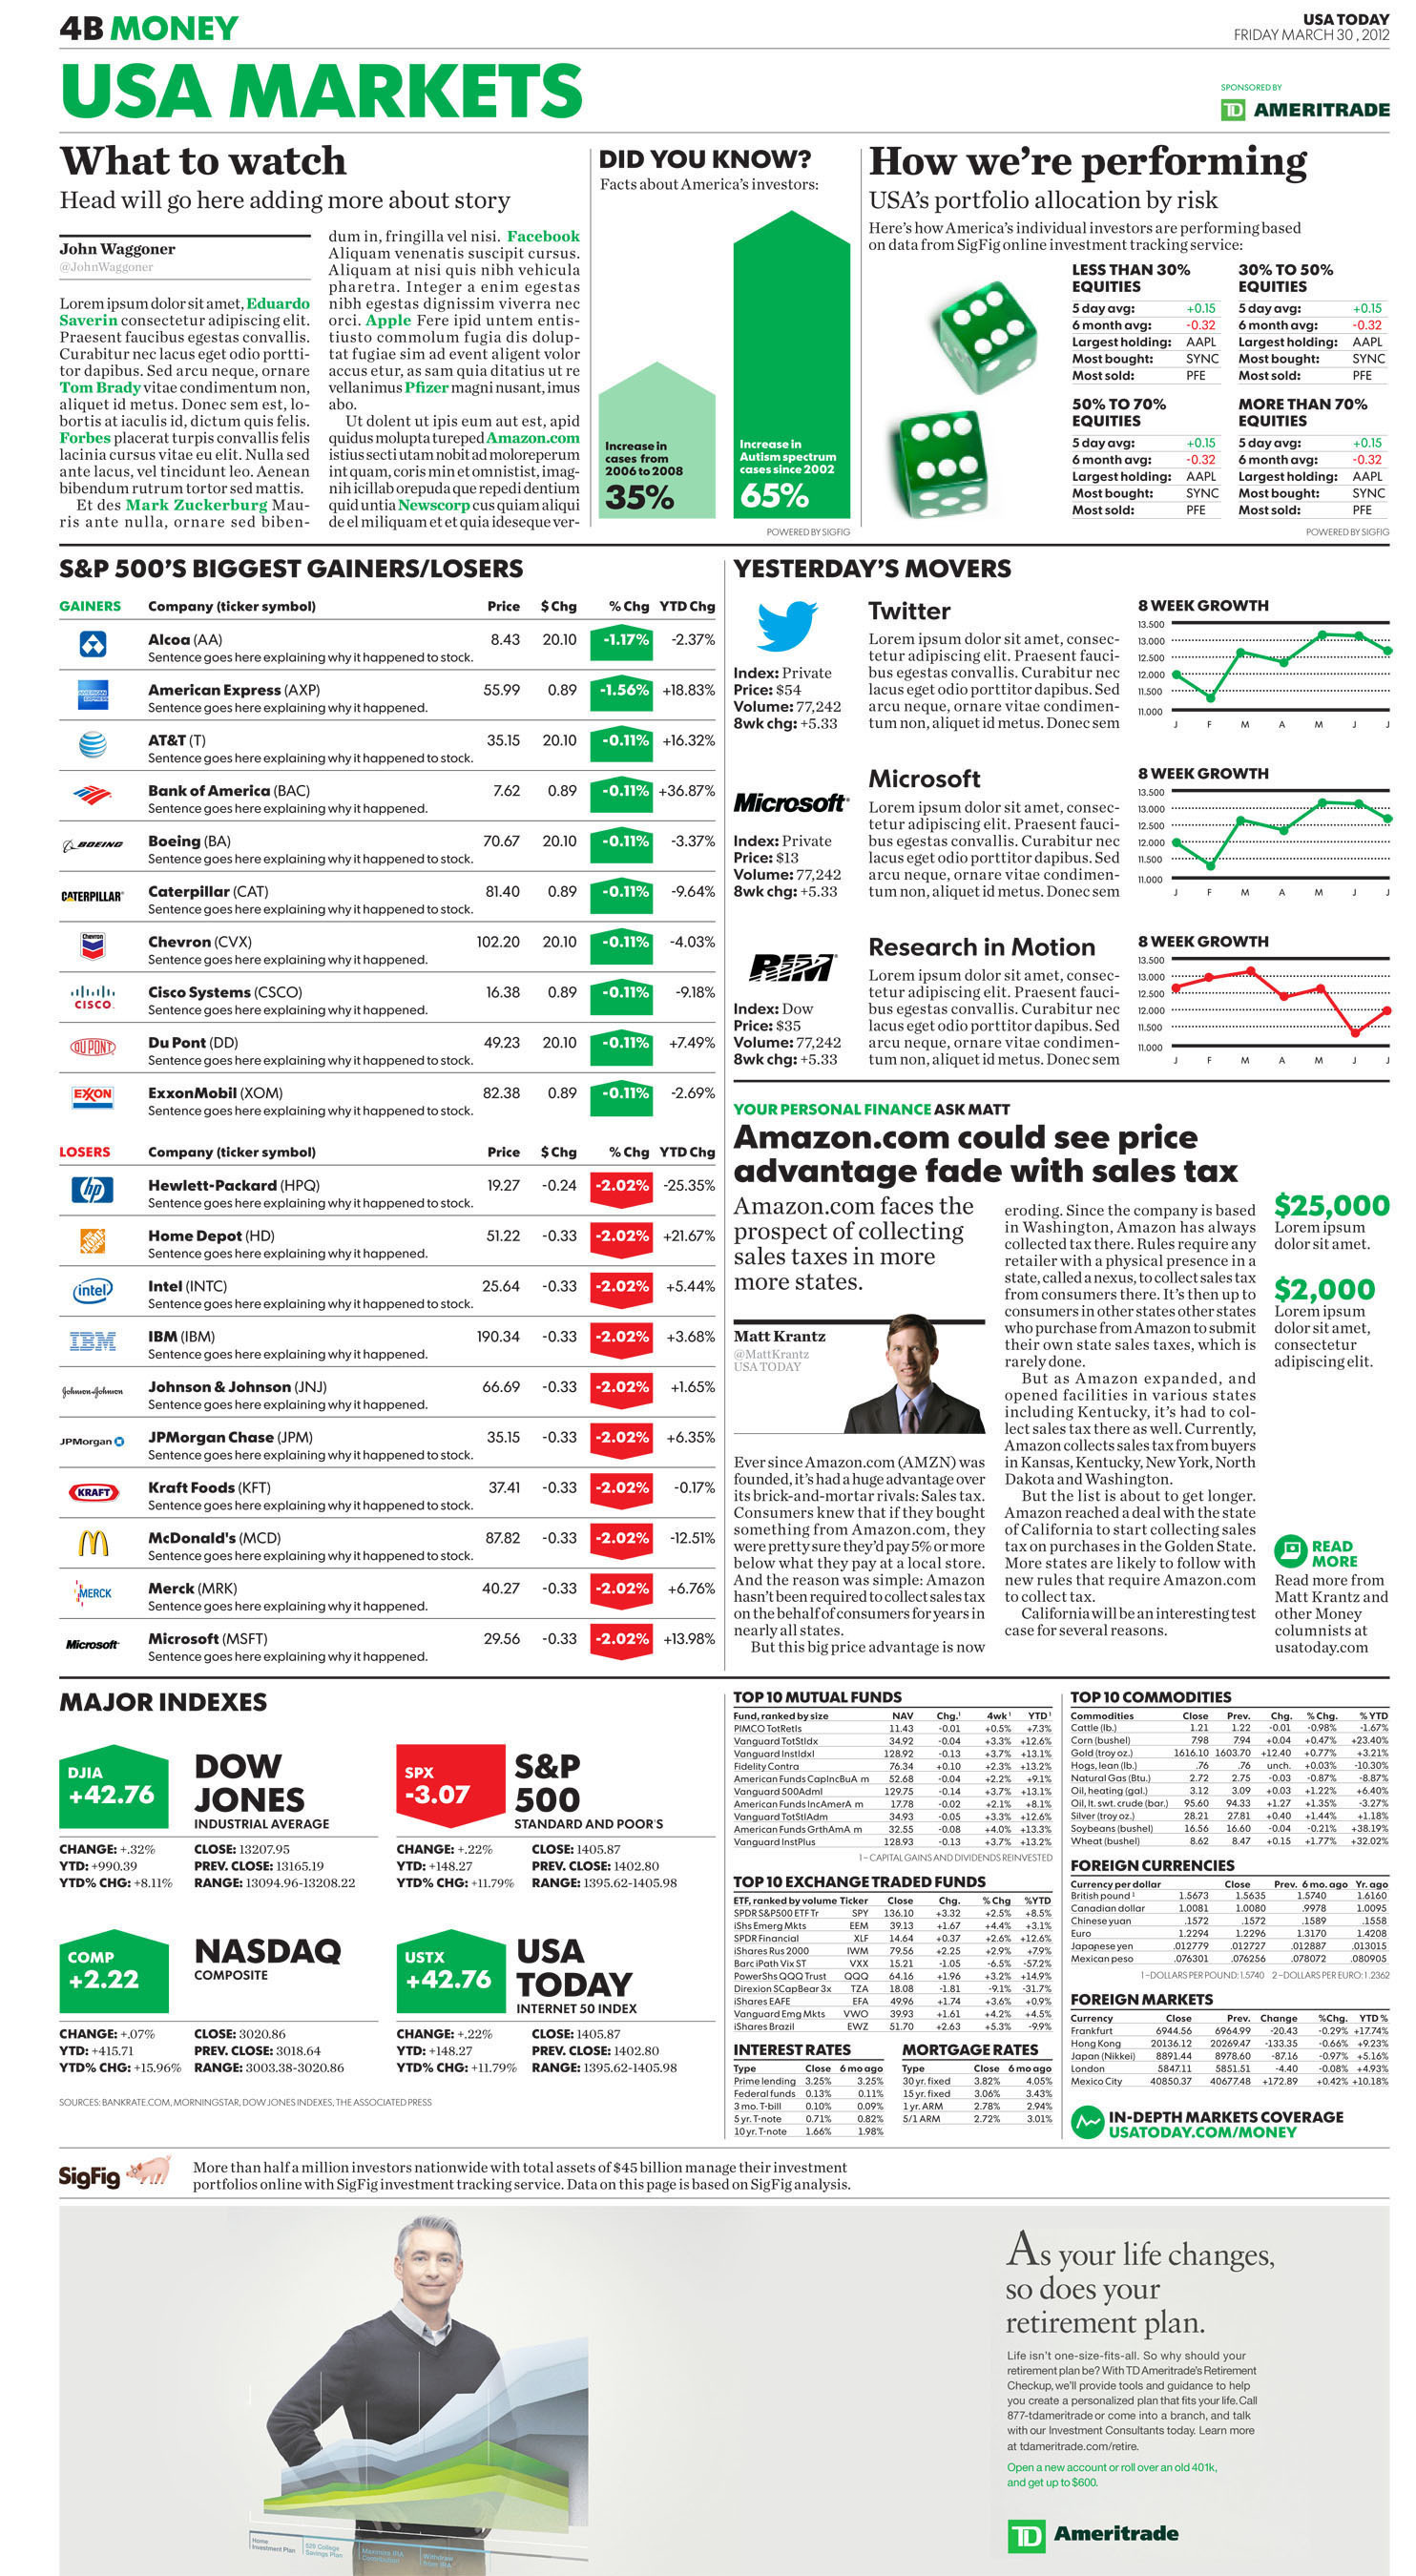 USA TODAY Unveils Dramatic Redesign on all platforms -- Markets Page  (PRNewsFoto/USA TODAY)